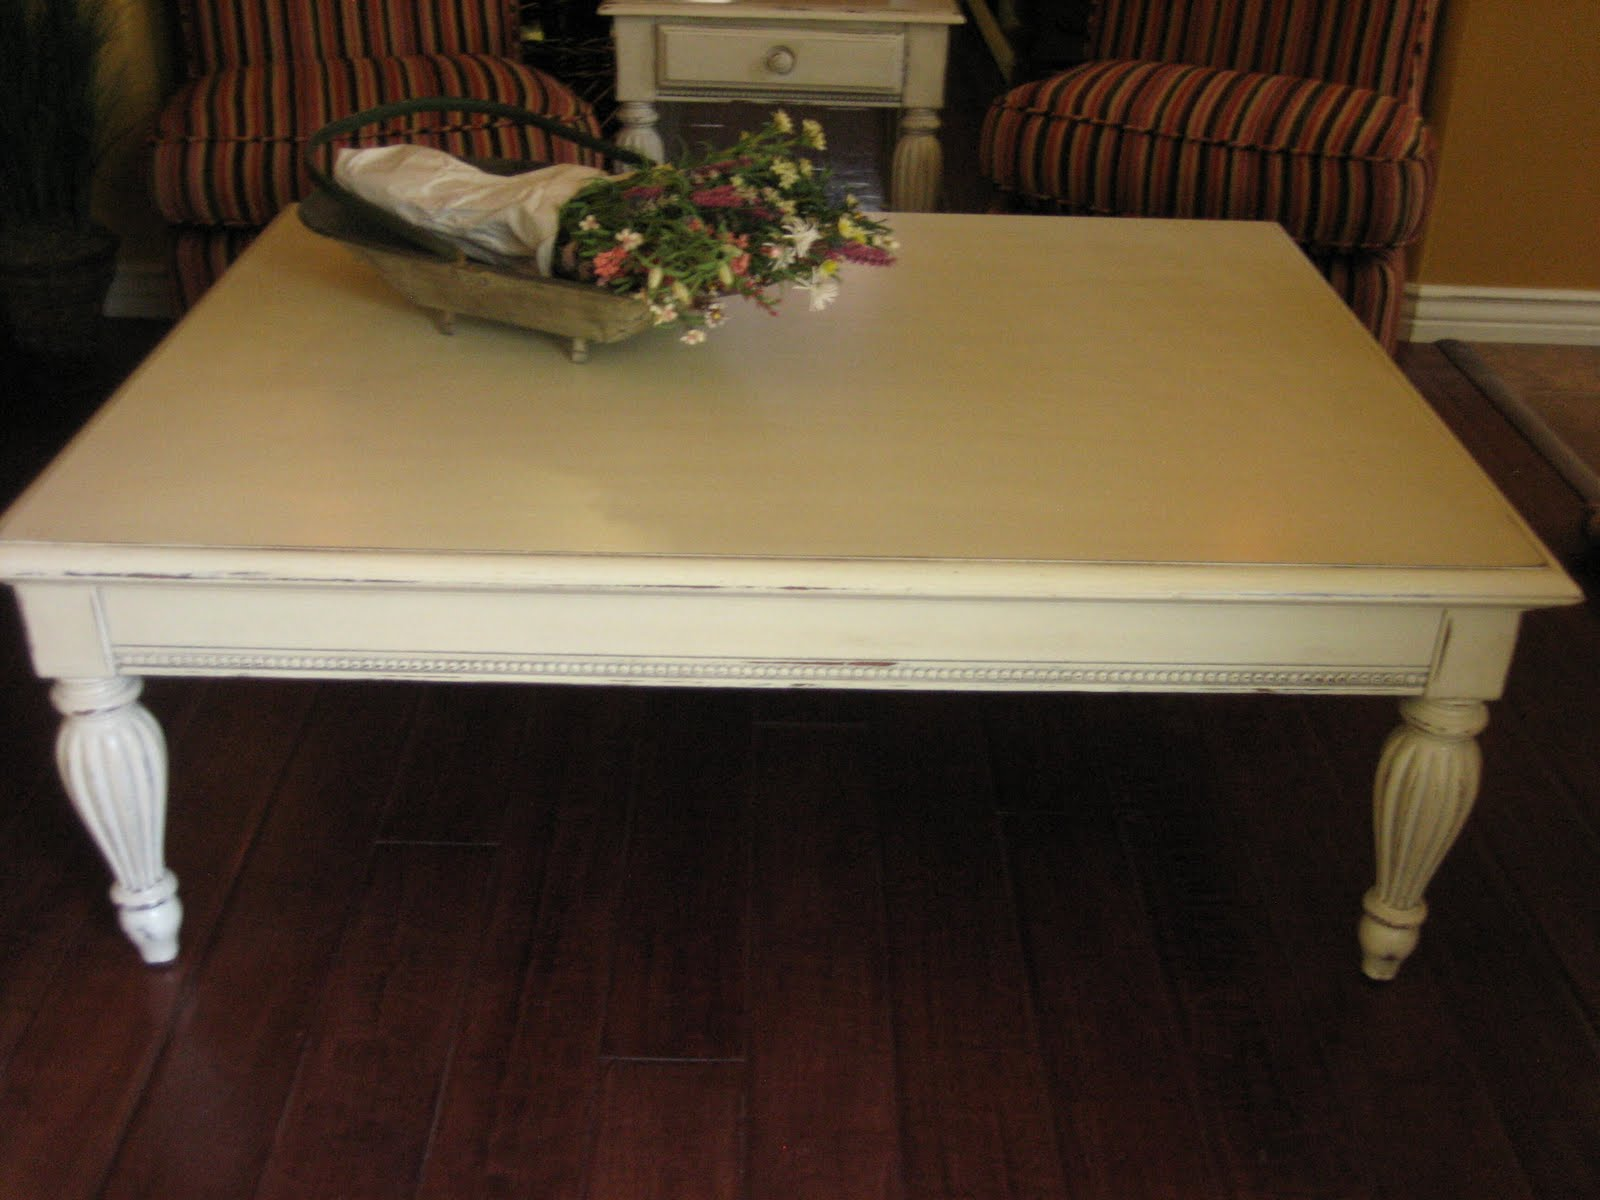 European paint finishes may 2010 for Coffee table 48 x 36